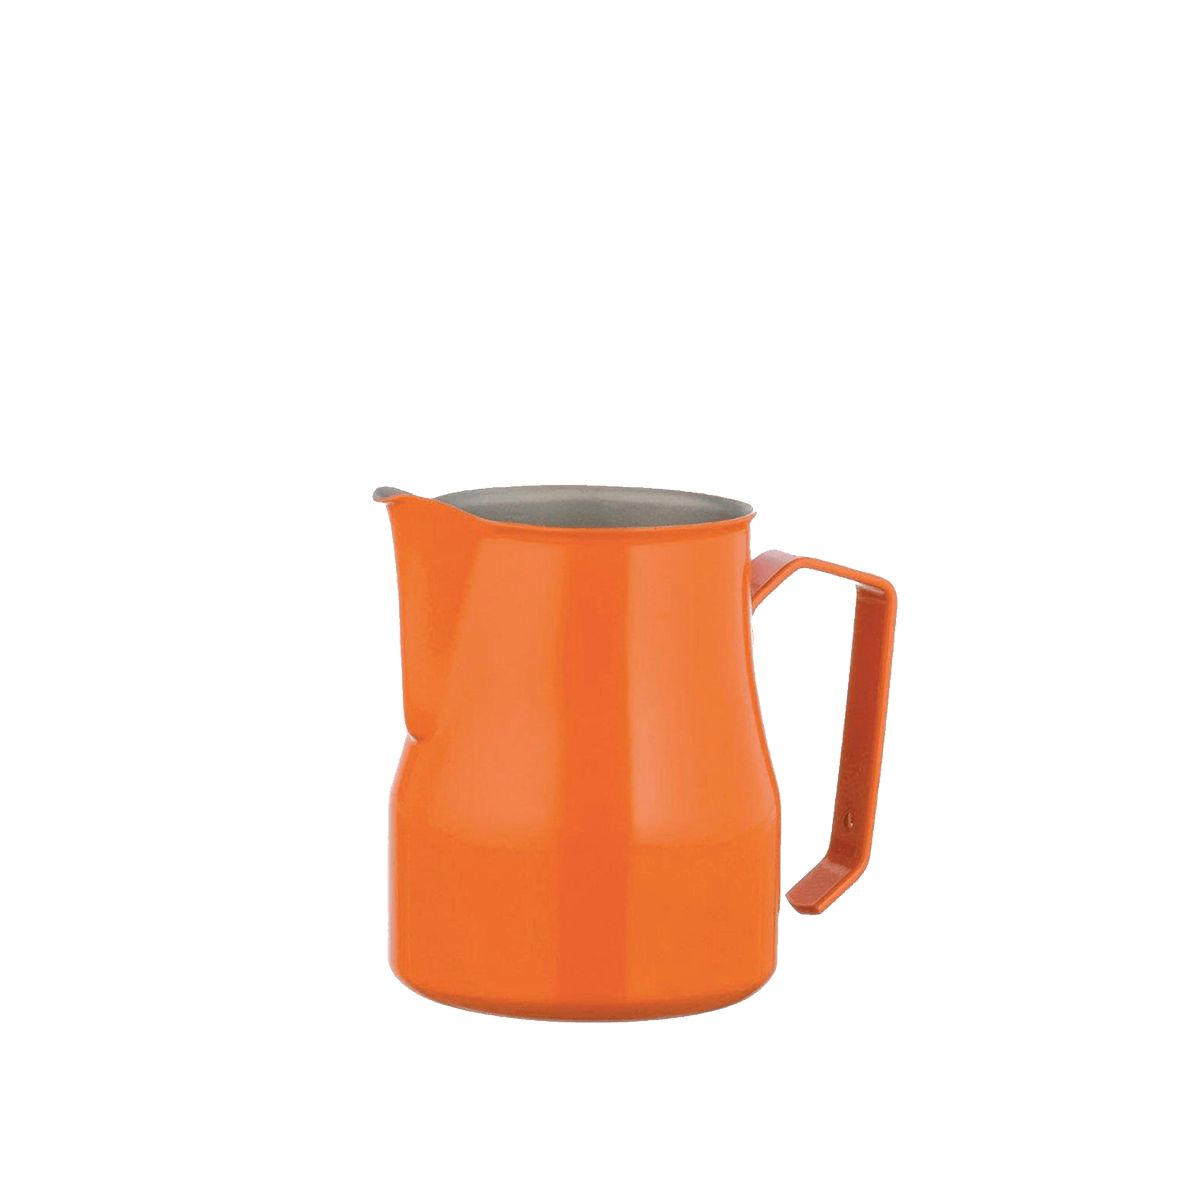 Teflon milk pitcher - Motta - Orange